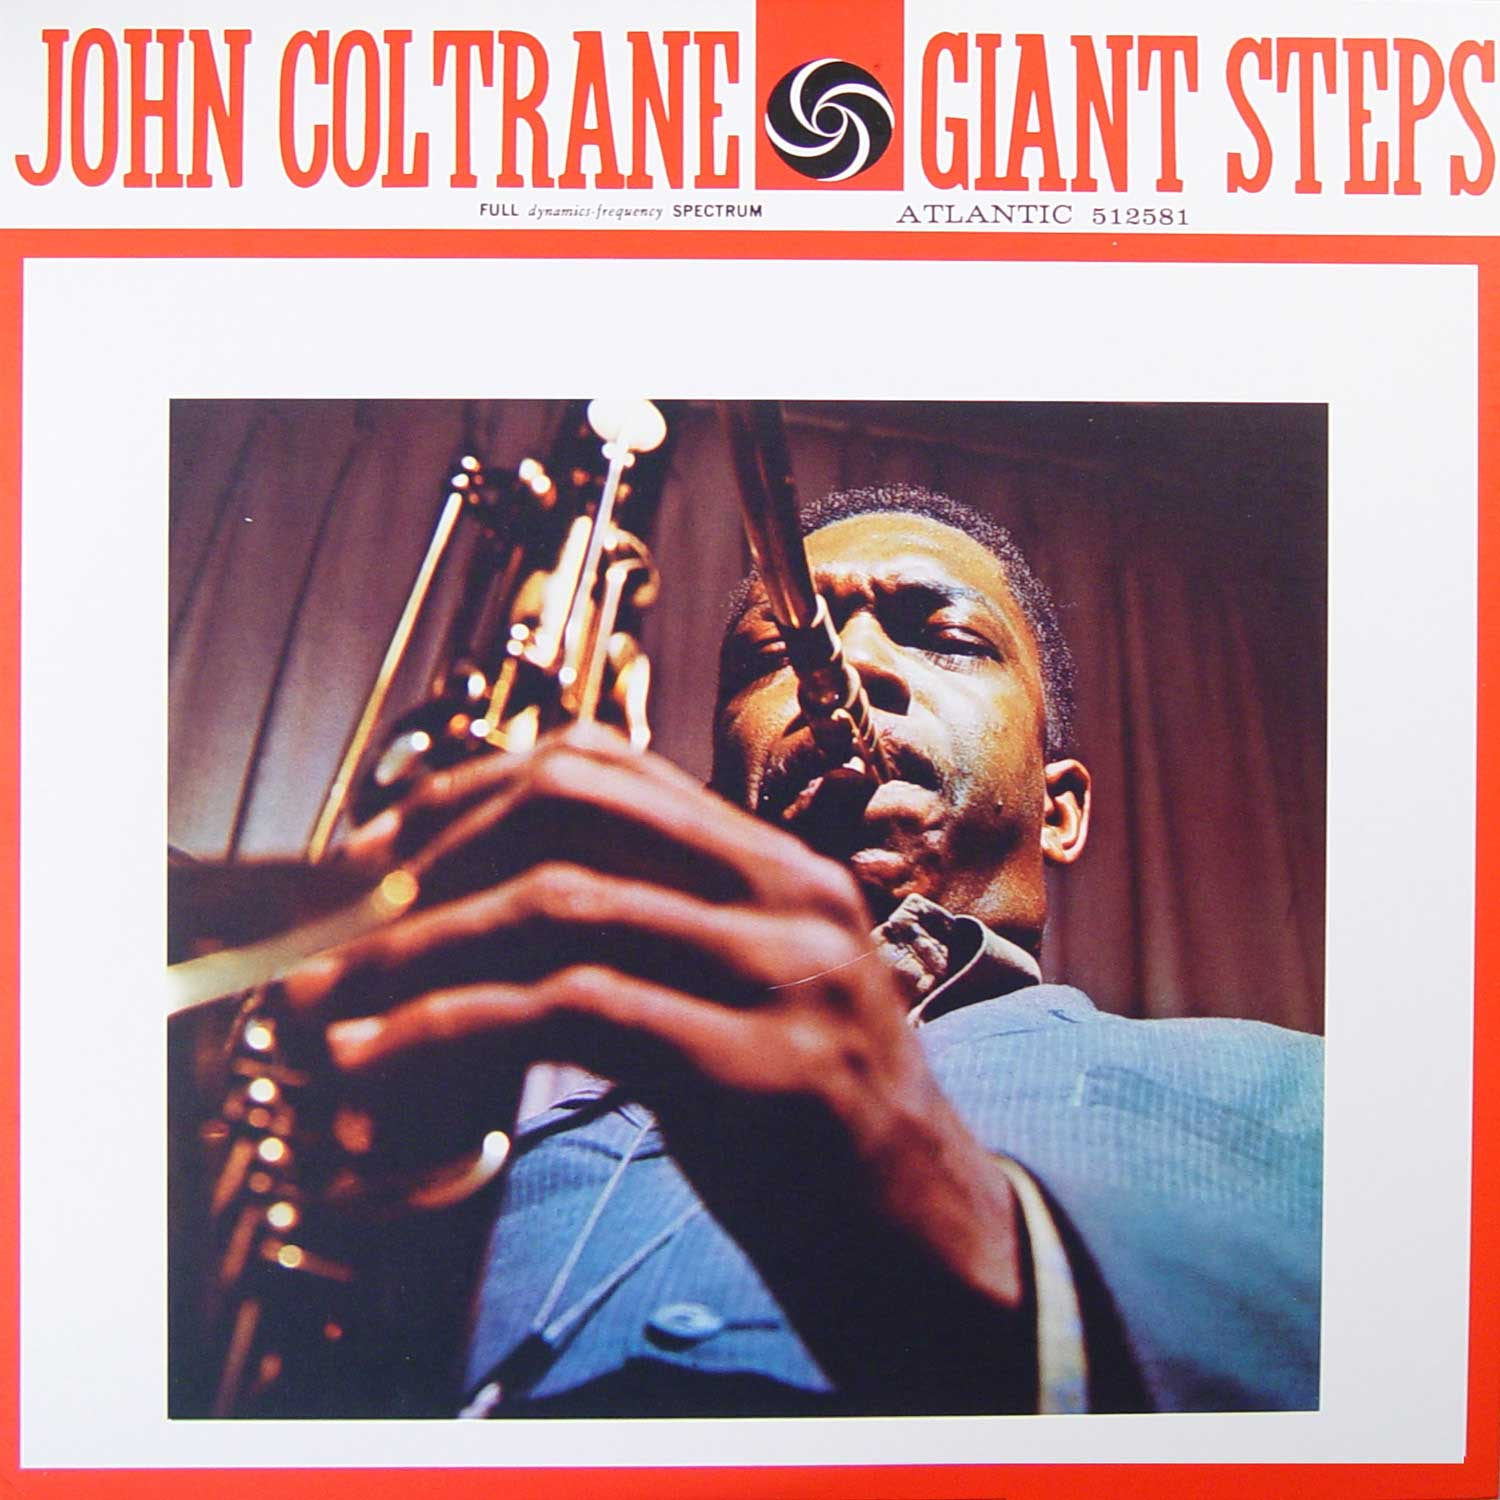 The cover of Giant Steps by John Coltrane.  Released January of 1960 7 years before his death from liver cancer inJuly 17 1967.  Coltrane is the grand uncle of multi-instrumentalist producer flying lotus.//Courtesy of Amazon.com